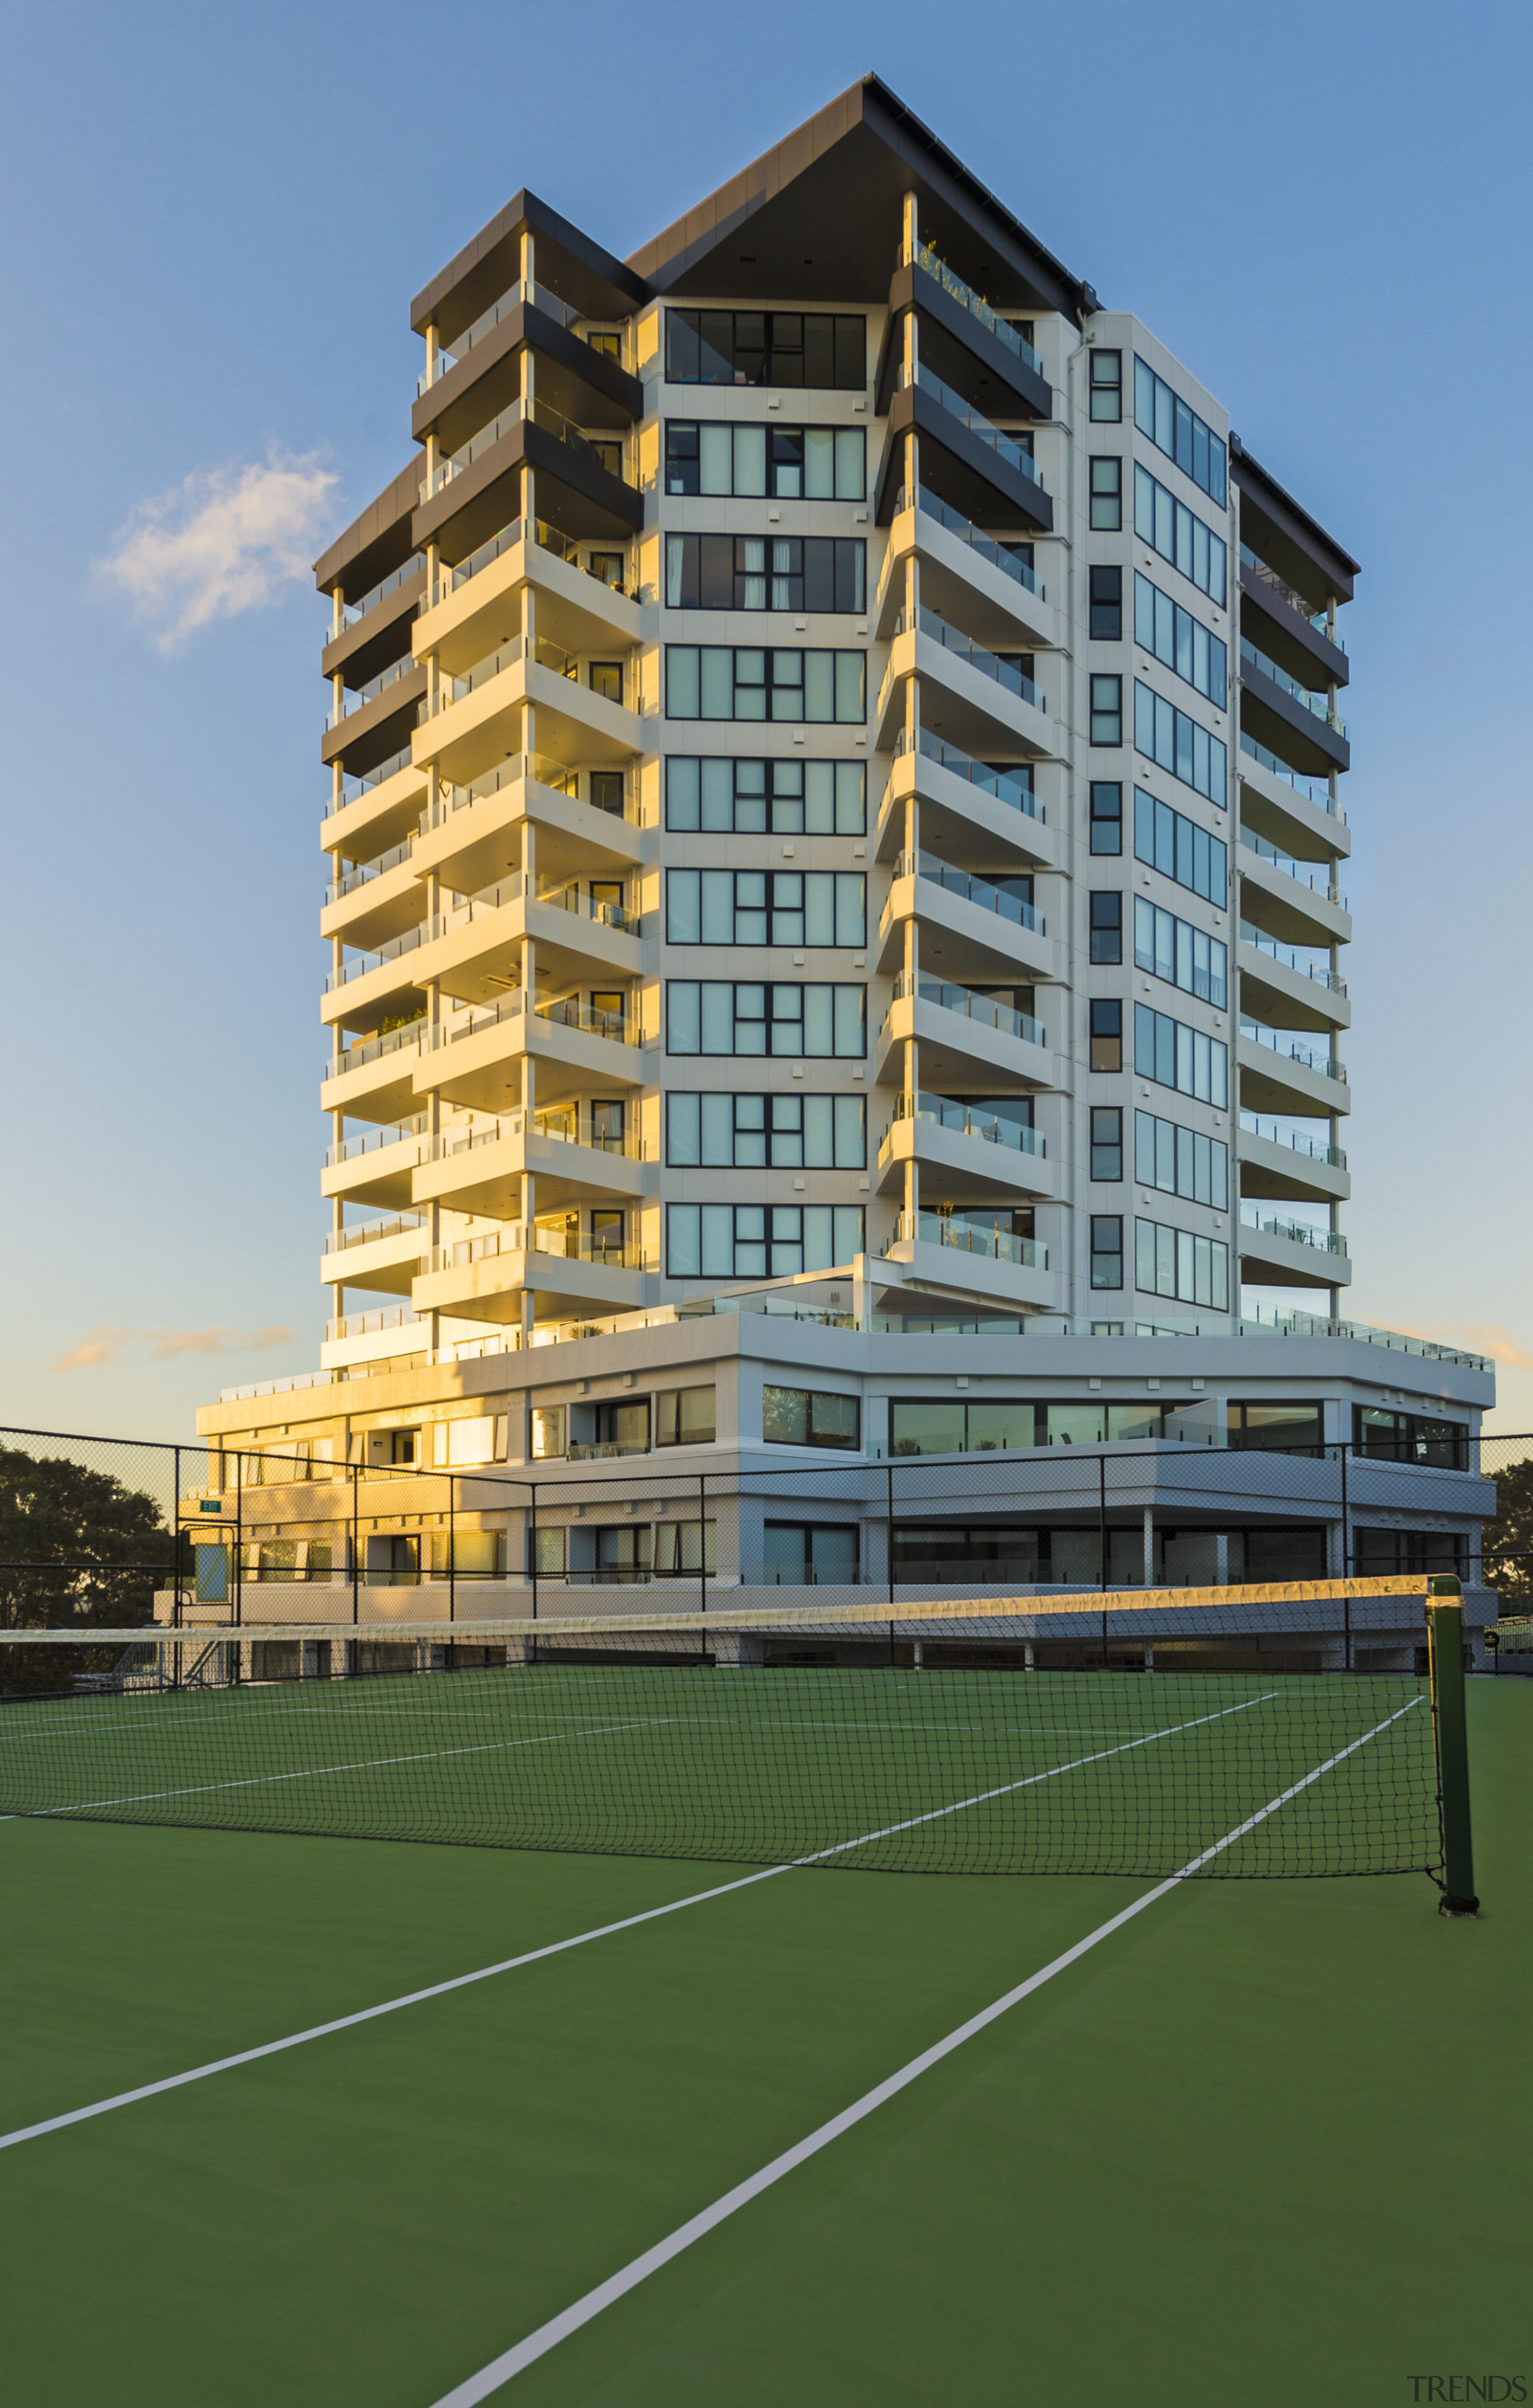 A tennis court attached to an original office apartment, architecture, building, city, commercial building, condominium, corporate headquarters, elevation, estate, facade, grass, headquarters, house, metropolitan area, mixed use, real estate, residential area, sky, structure, tower block, urban area, green, teal